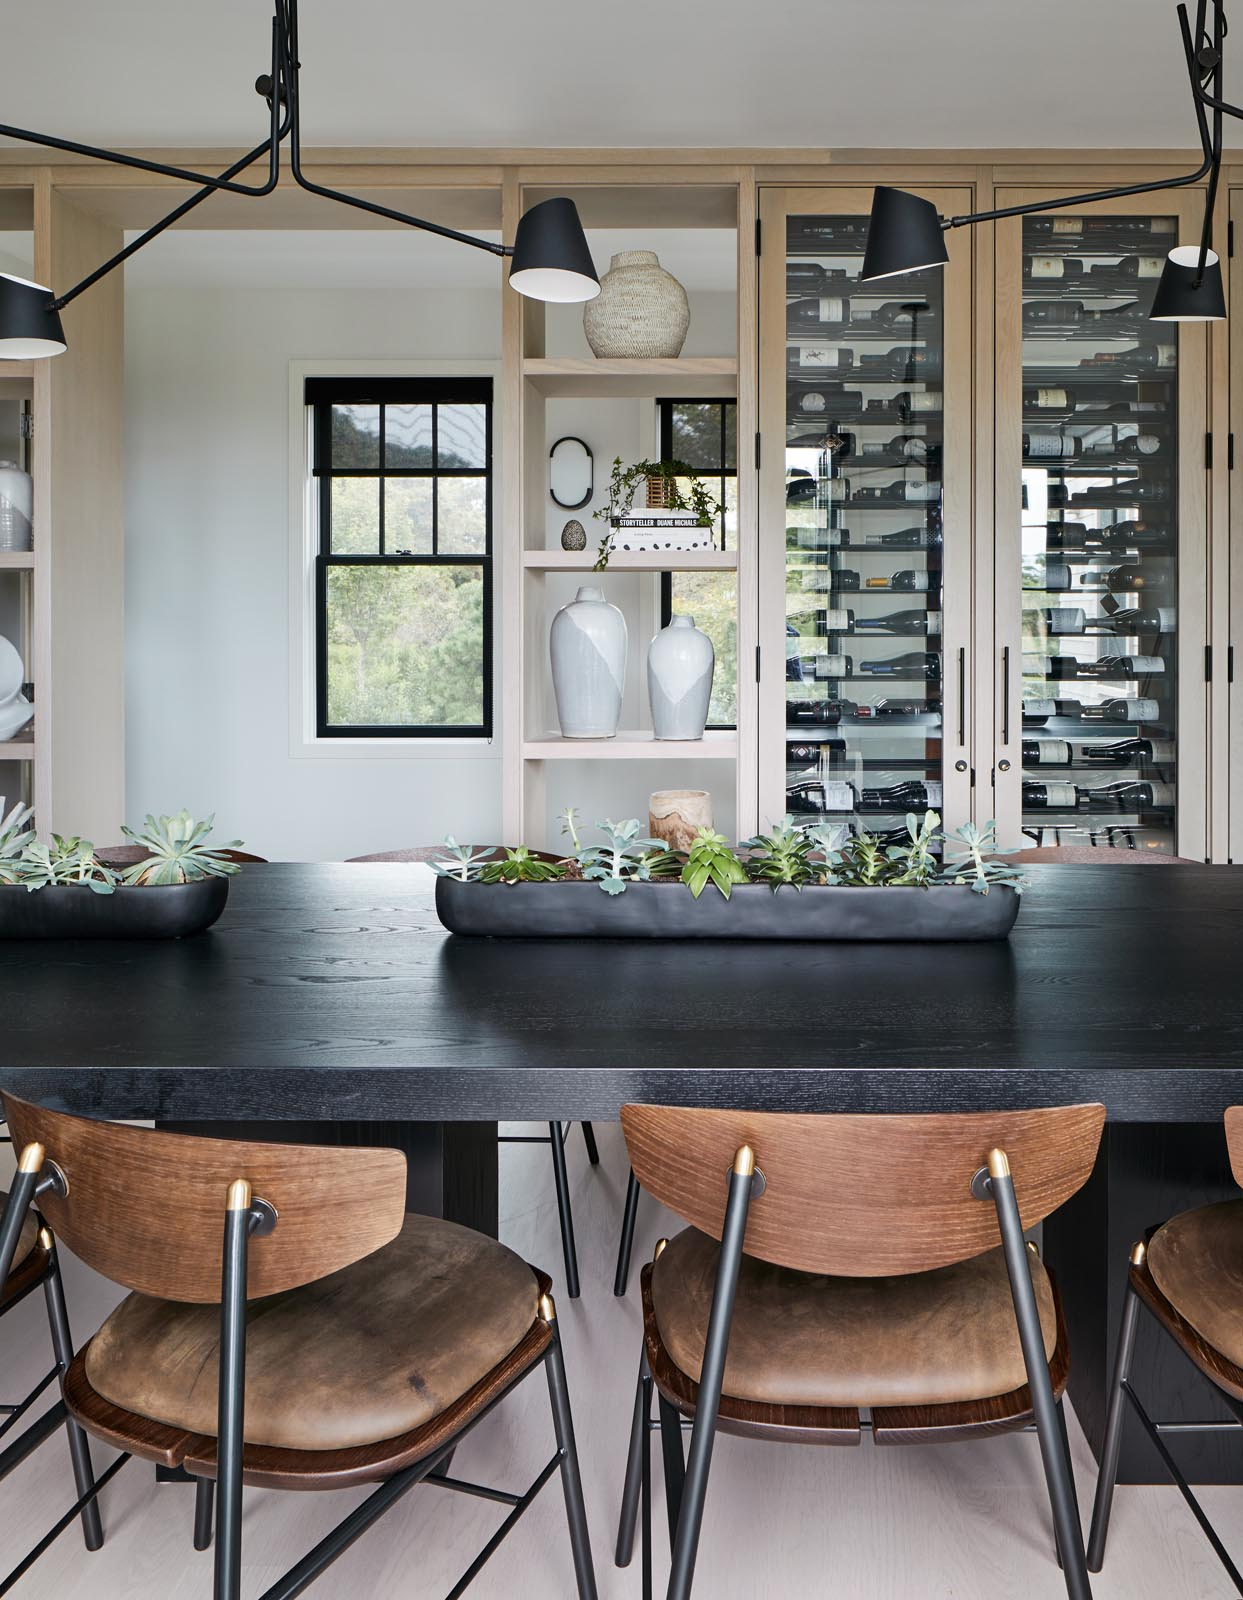 In this dining area, there's a custom designed wood shelving unit that includes glass front cabinets that show off a wine collection.